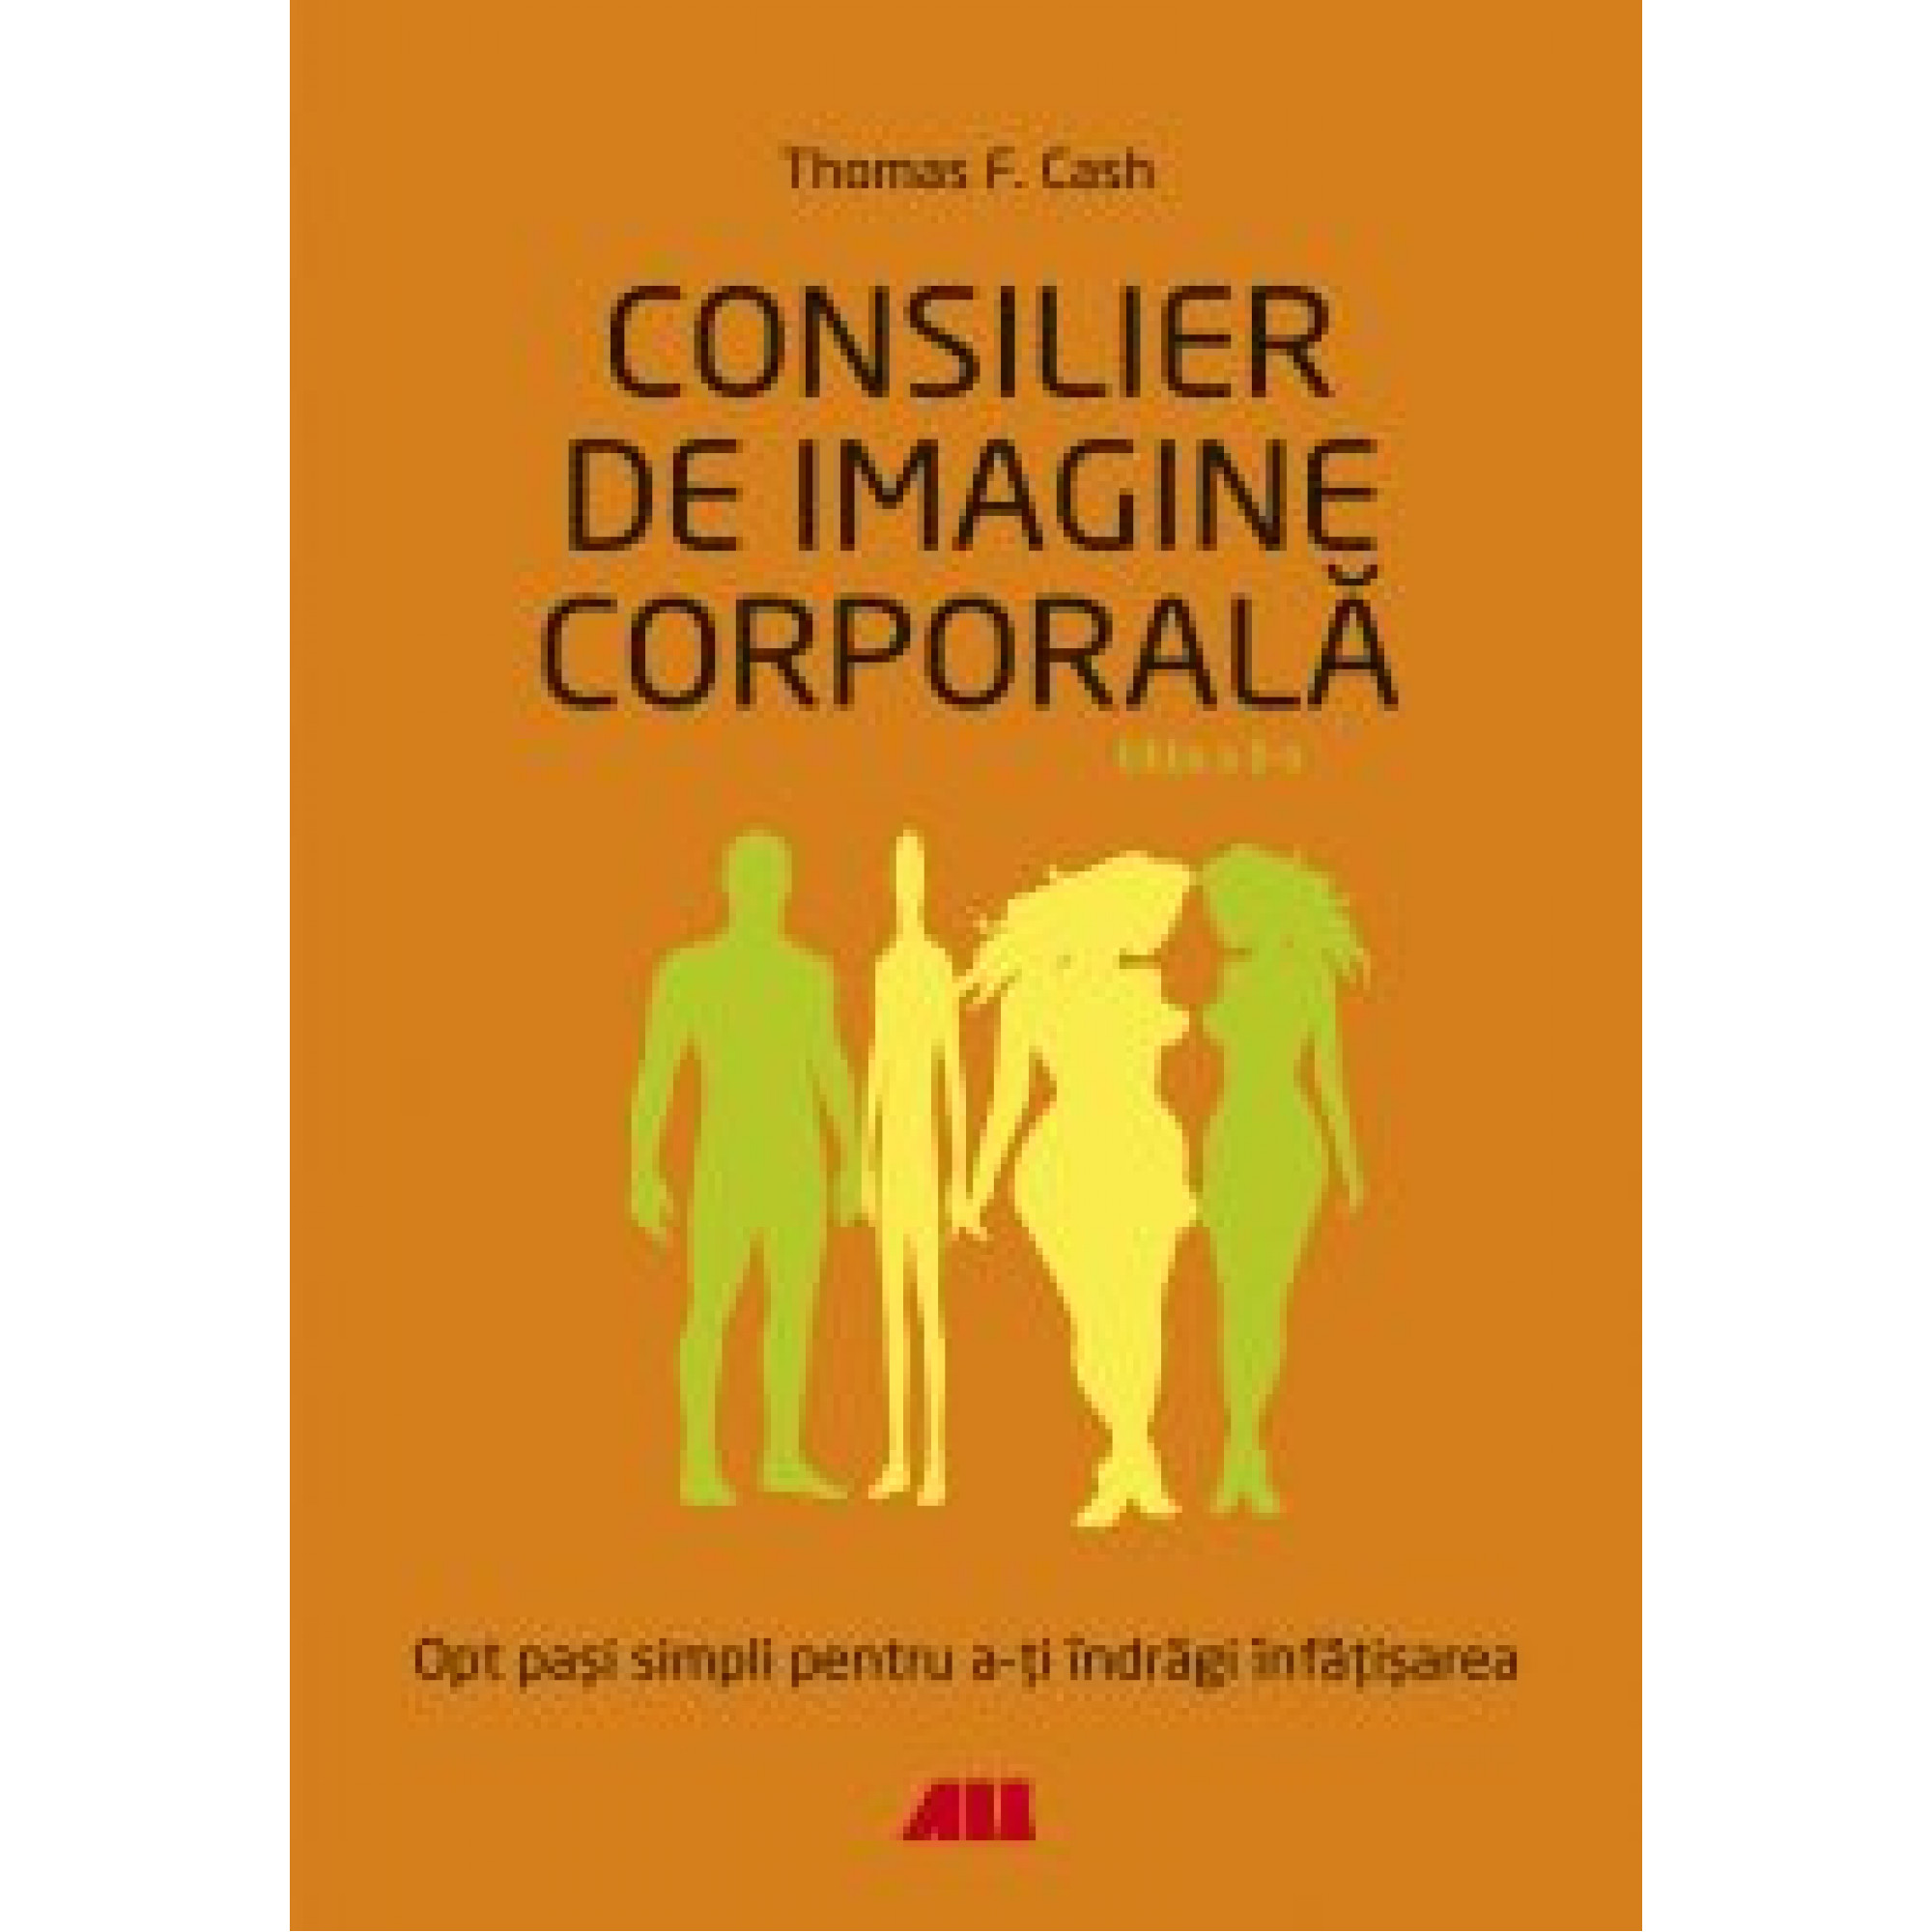 Consilier de imagine corporală; Thomas F. Cash